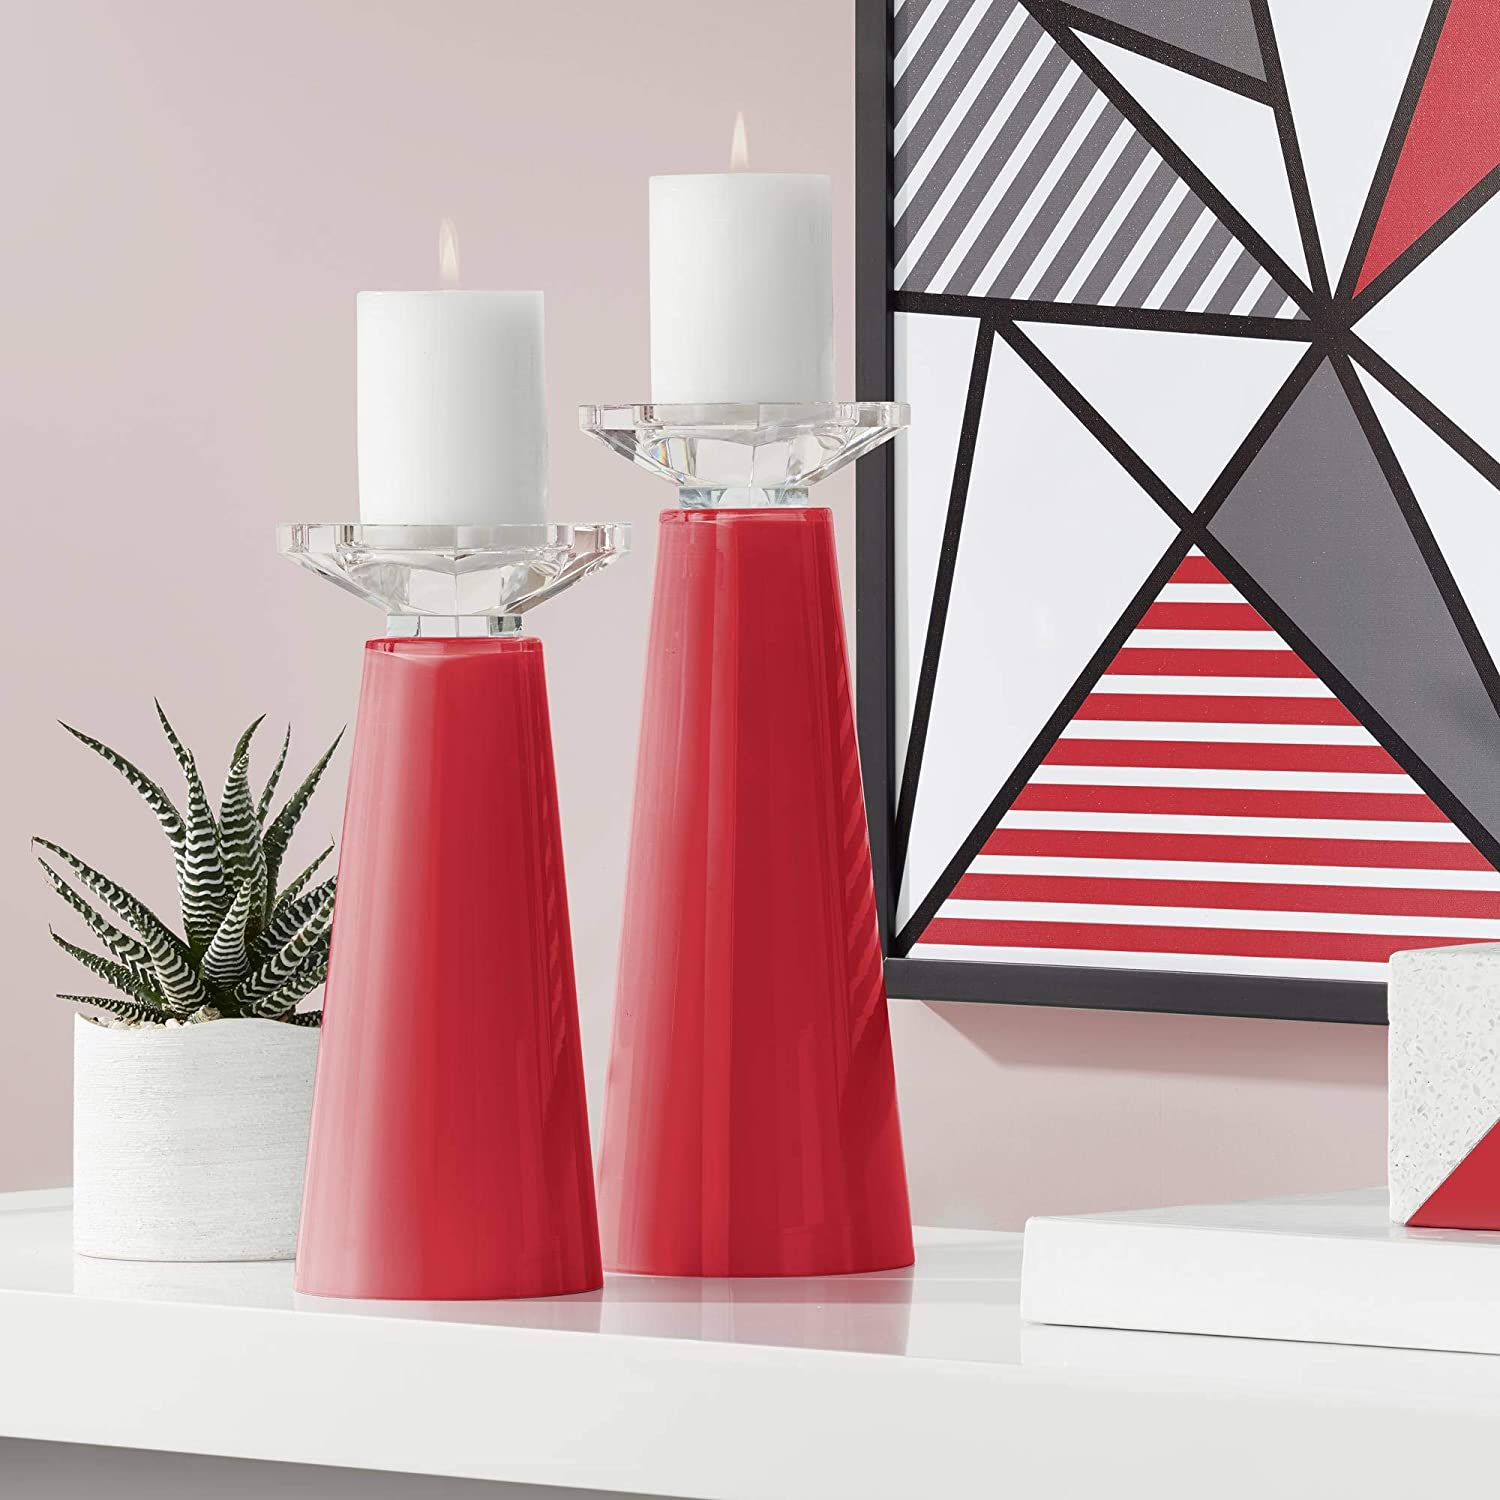 Sale SALE% OFF Color Ranking TOP2 + Plus Ribbon Red 2 Set Meghan Candleholders of